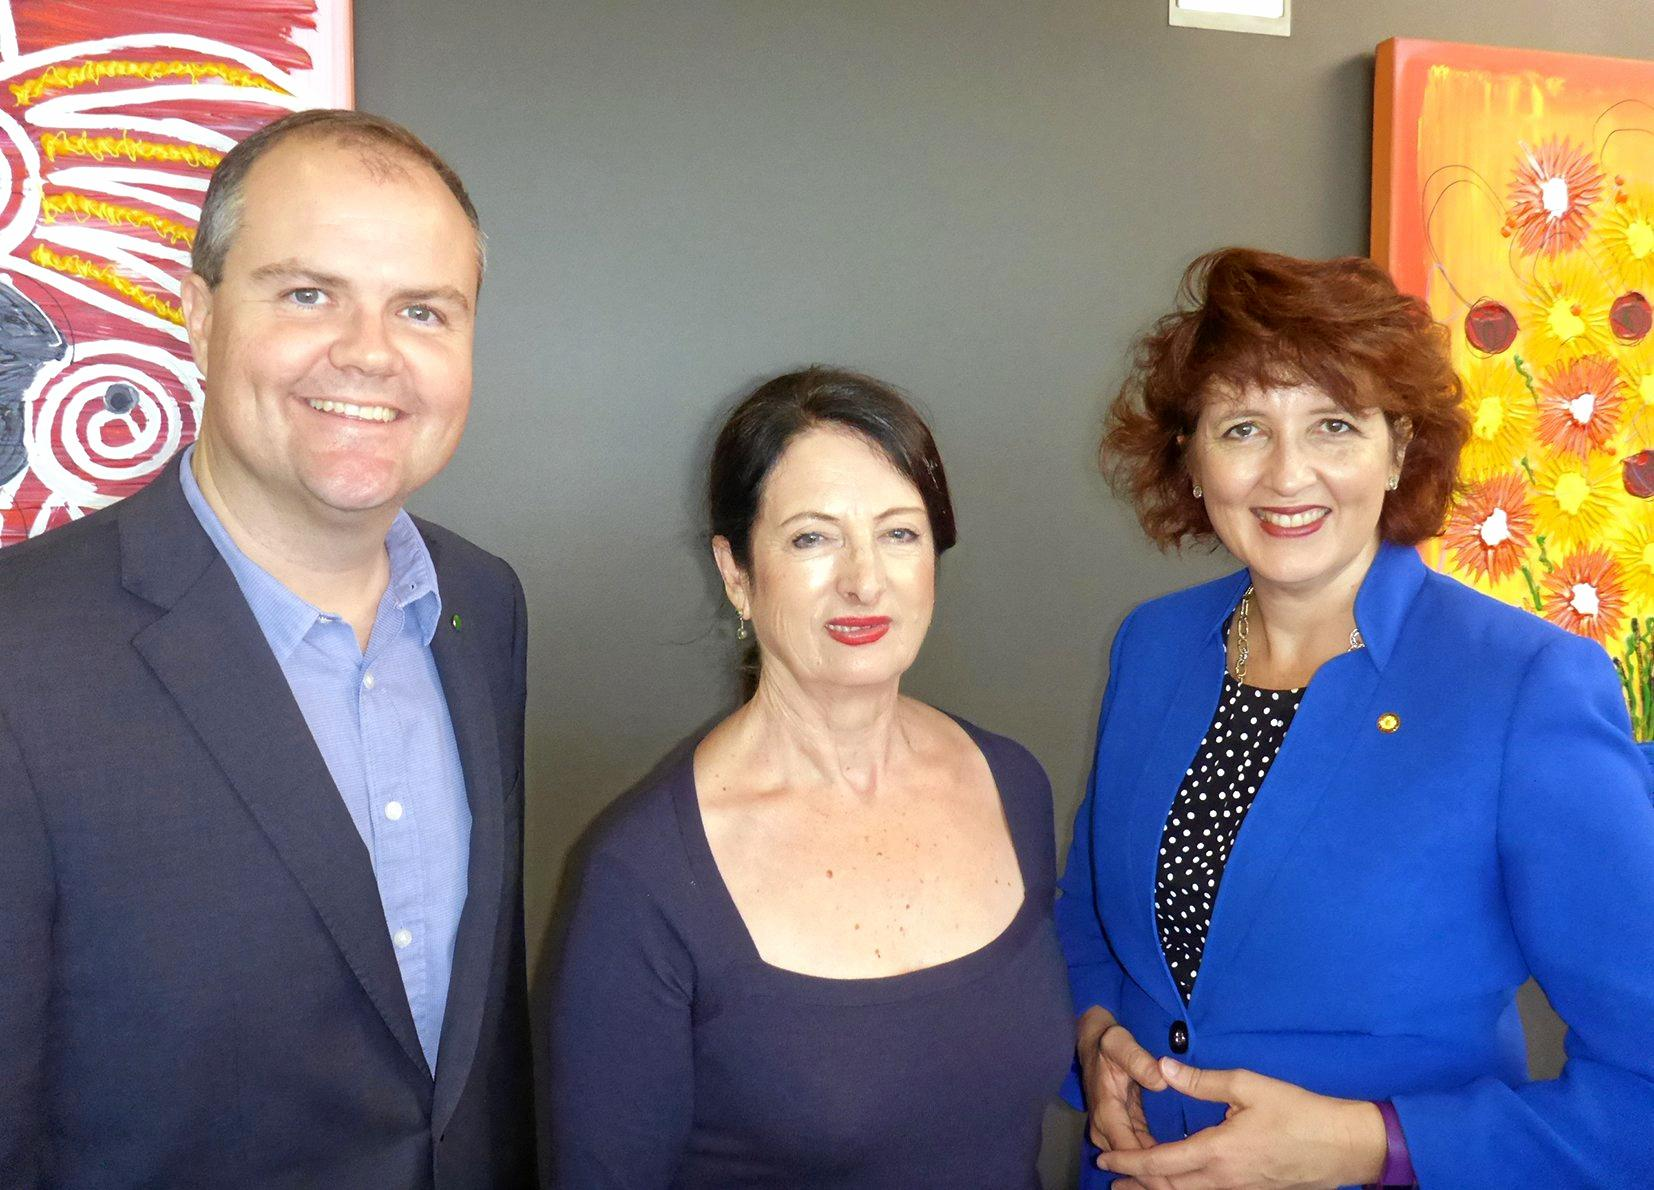 Ted O'Brien,  Sandy Zubrinich and Fiona Simpson MP discuss the strategic direction of the Sunshine Coast.